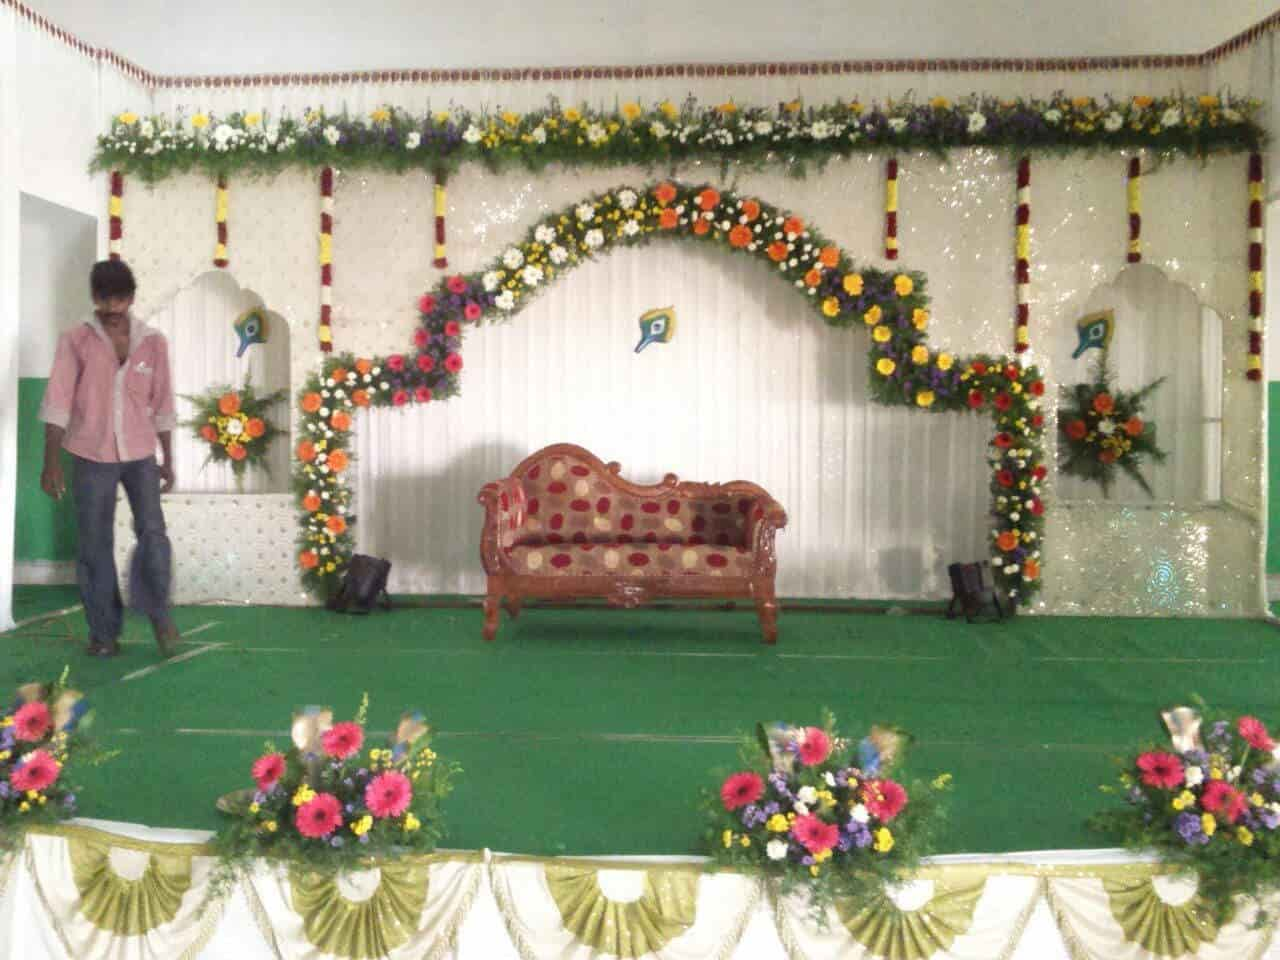 decorations photo flower design decoration ideas photos gallery marriage djenne decor homes stage